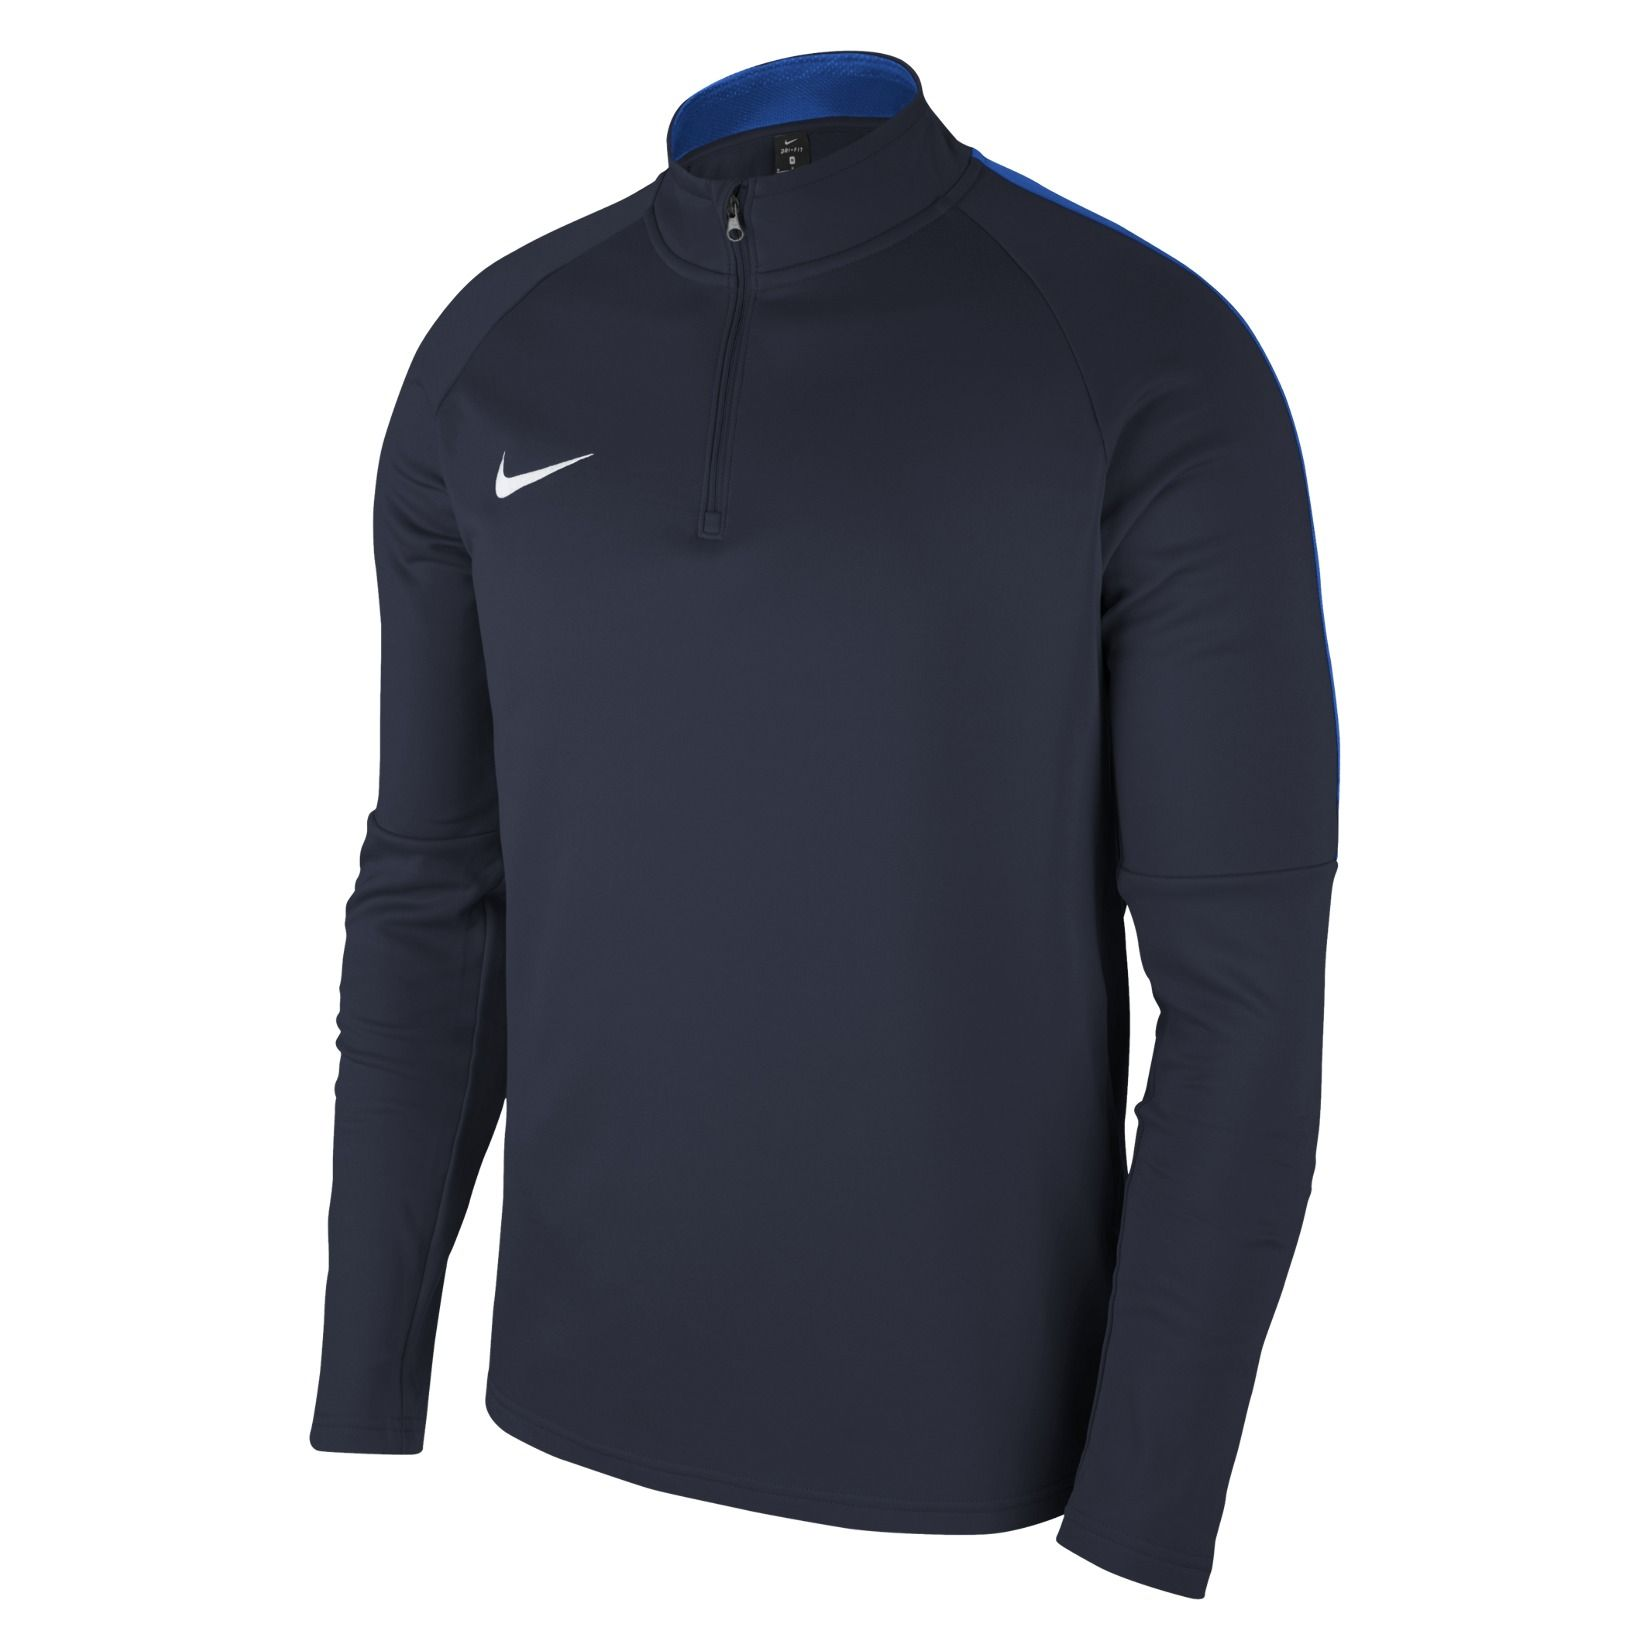 NIKE DRY ACDMY18 DRIL TOP LS 893624-451